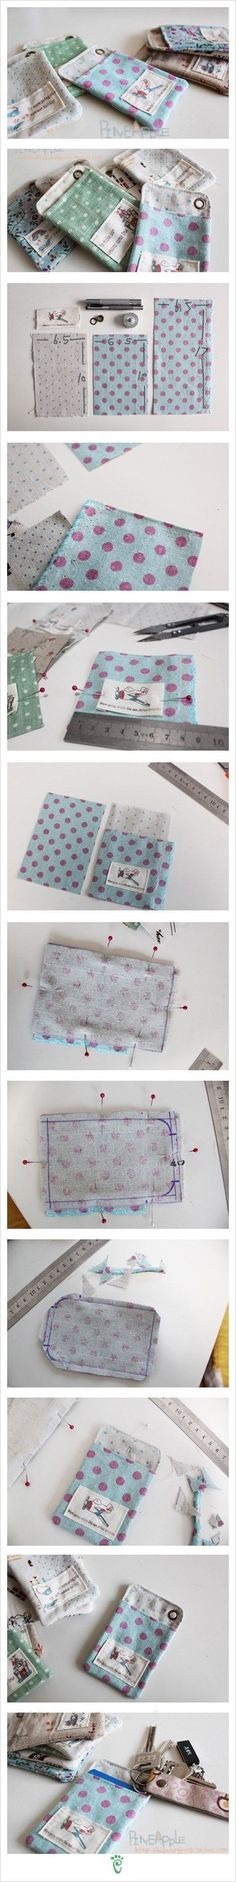 could this be superglued or stitched by one person on a sewing machine? DIY Fabric Pouch diy craft crafts craft ideas easy crafts diy ideas diy crafts sewing easy diy home crafts diy sewing sewing crafts storage crafts Sewing Hacks, Sewing Tutorials, Sewing Patterns, Diy Couture, Couture Sewing, Fabric Crafts, Sewing Crafts, Sewing Projects, Diy Fabric Pouches